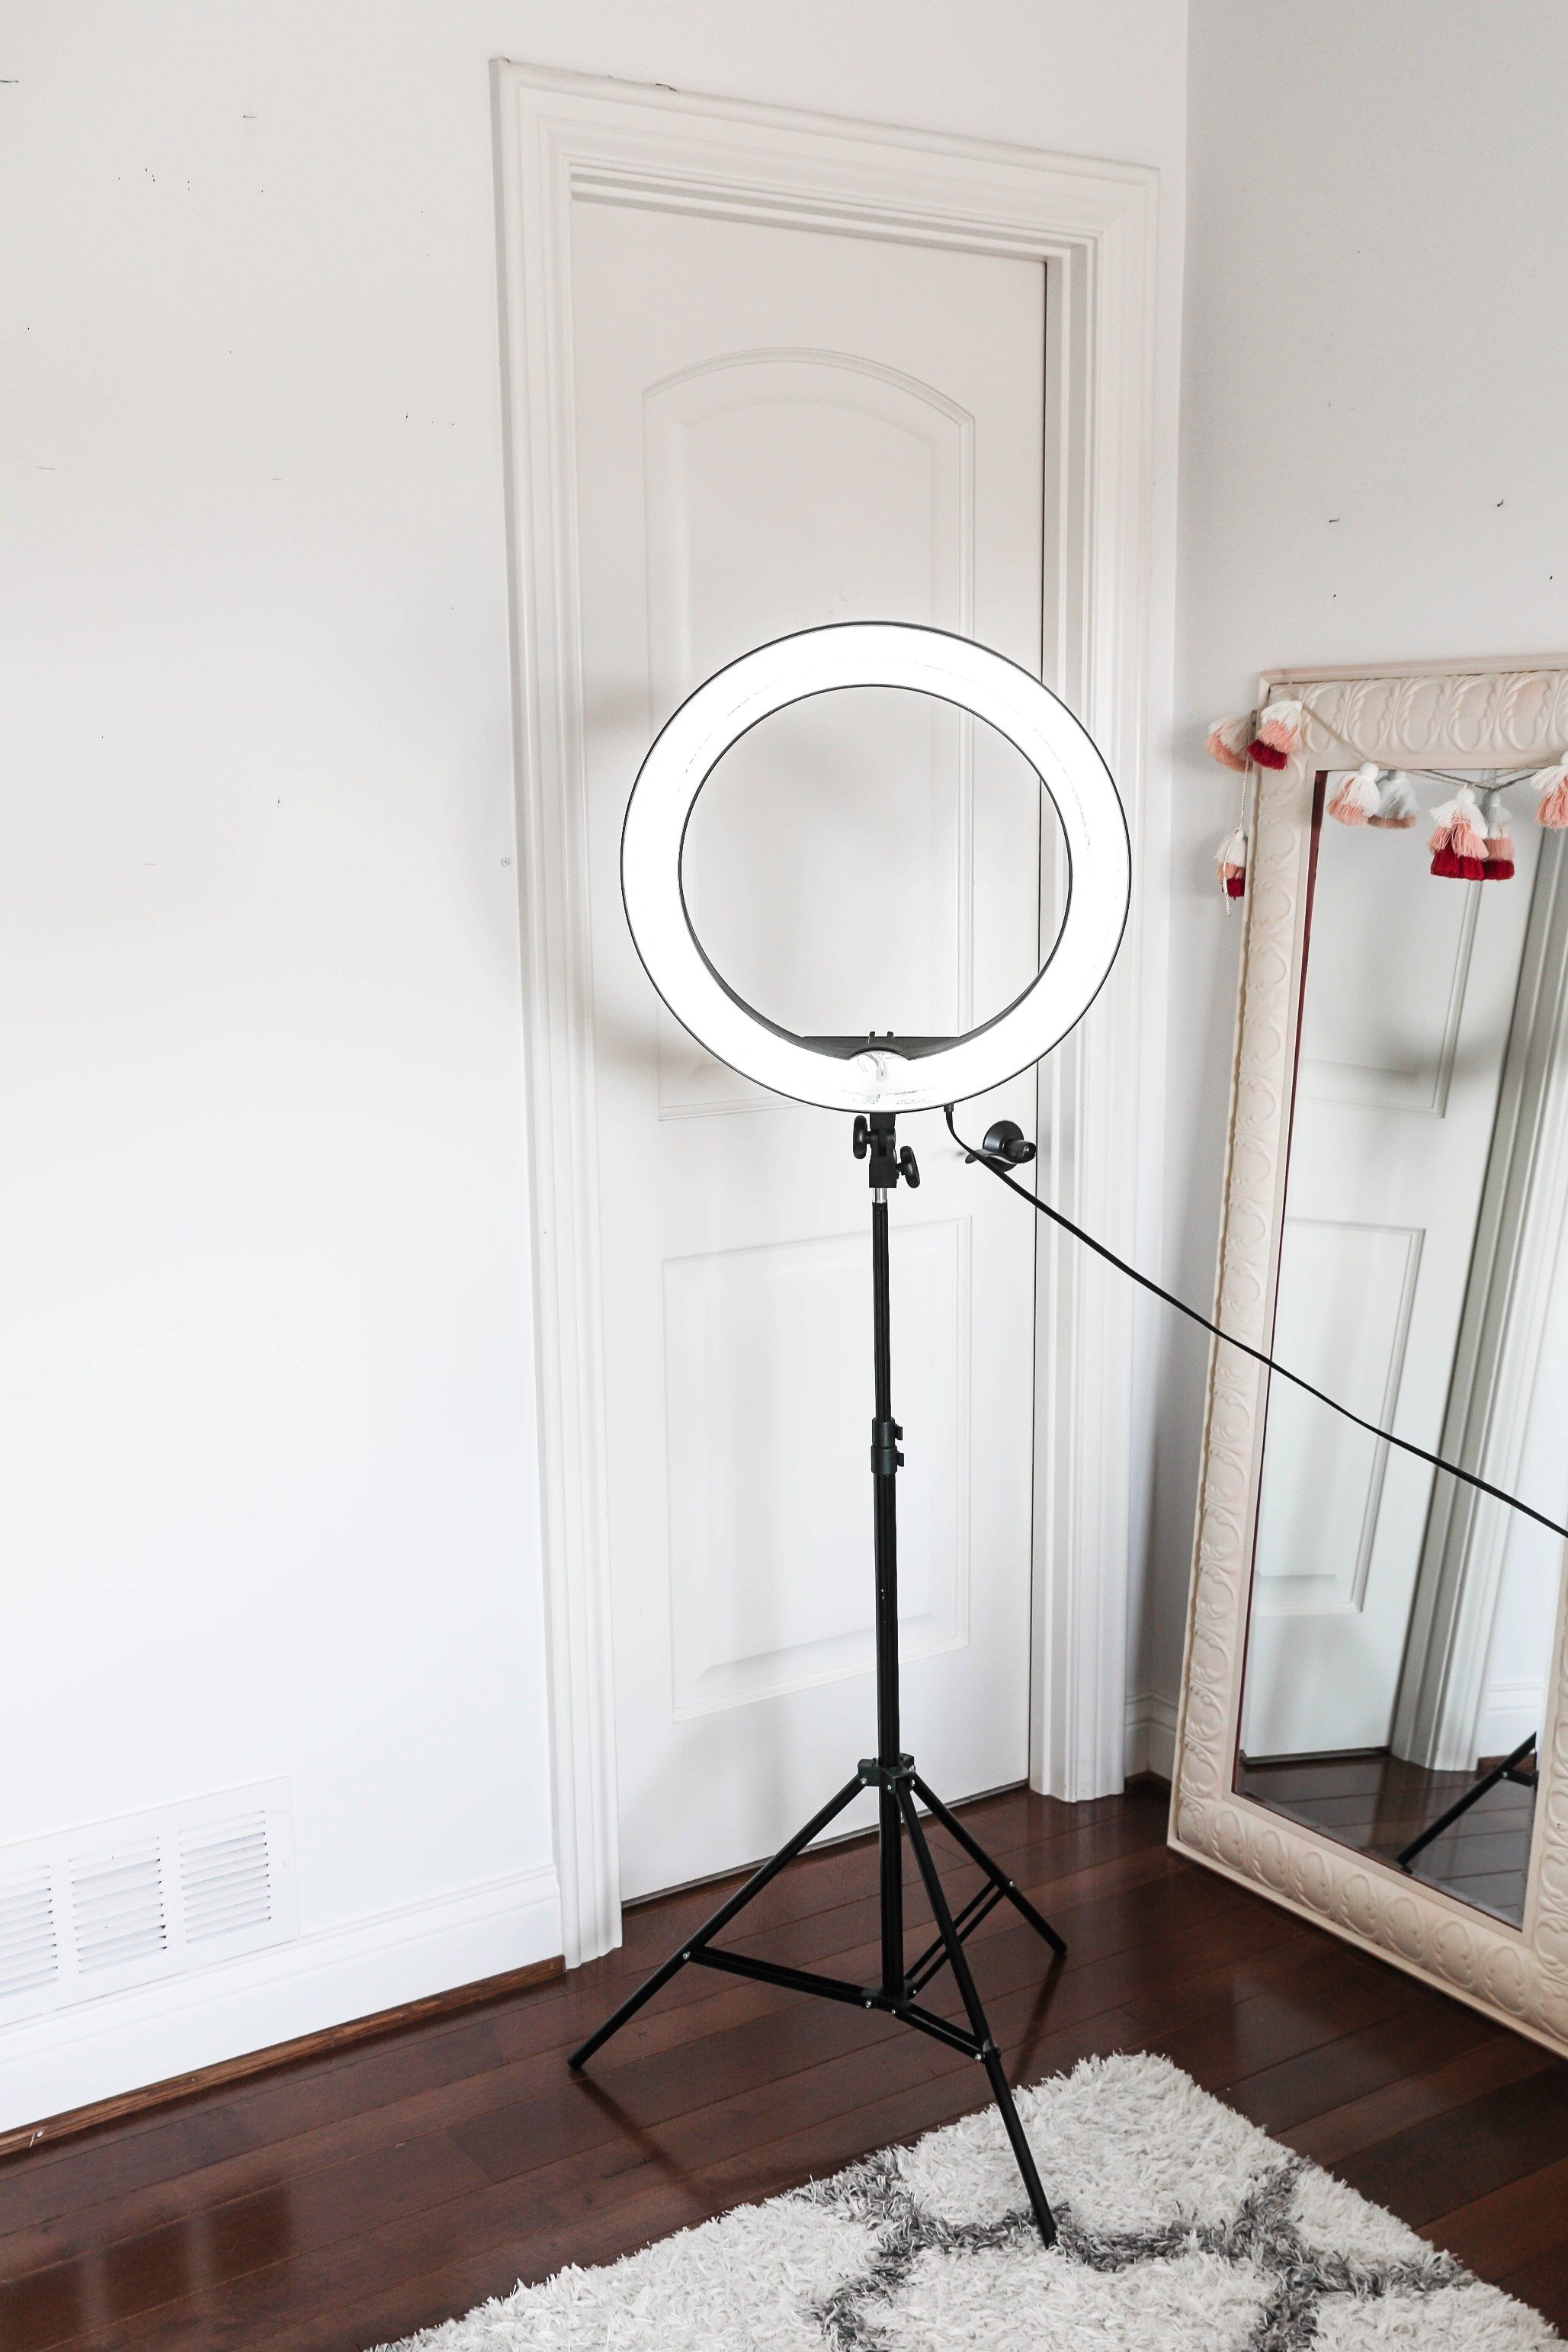 Amazon haul life hacks ringlight lighting kit lifestyle fashion blog daily dose of charm lauren lindmark